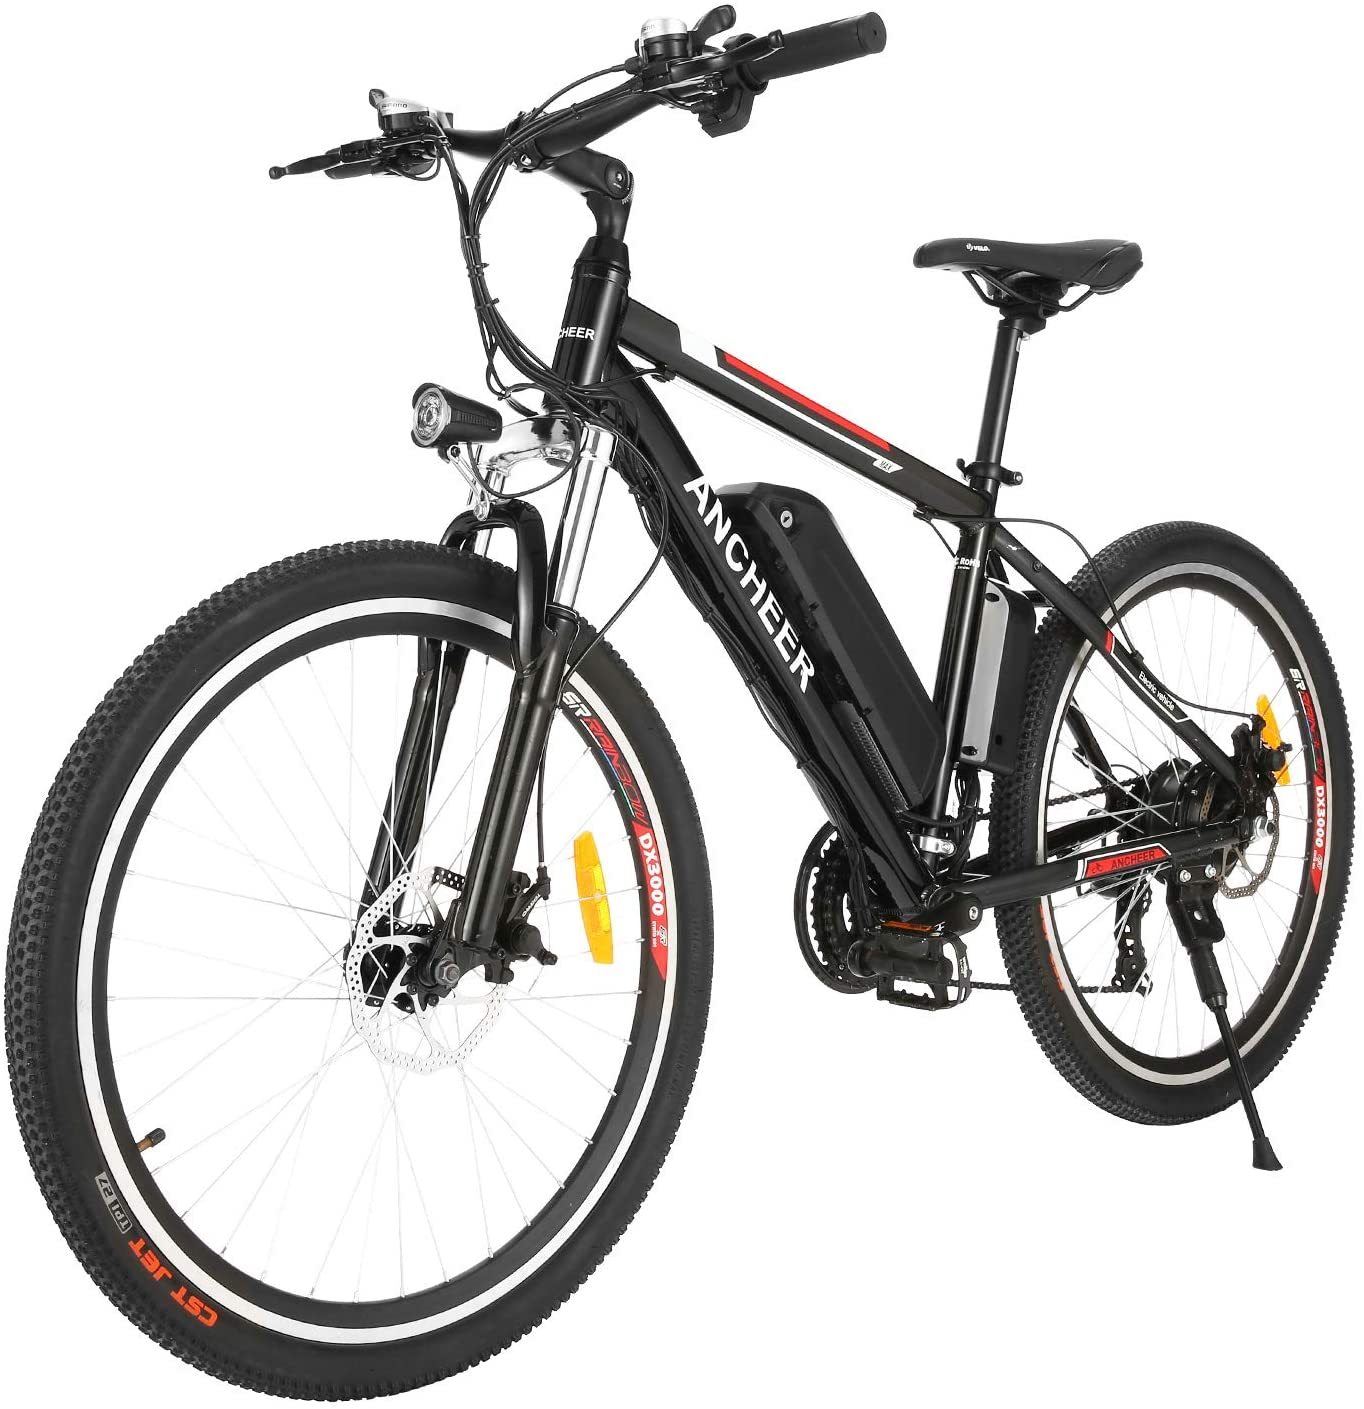 Best off road Electric Bike - Adult Electric Mountain Bike